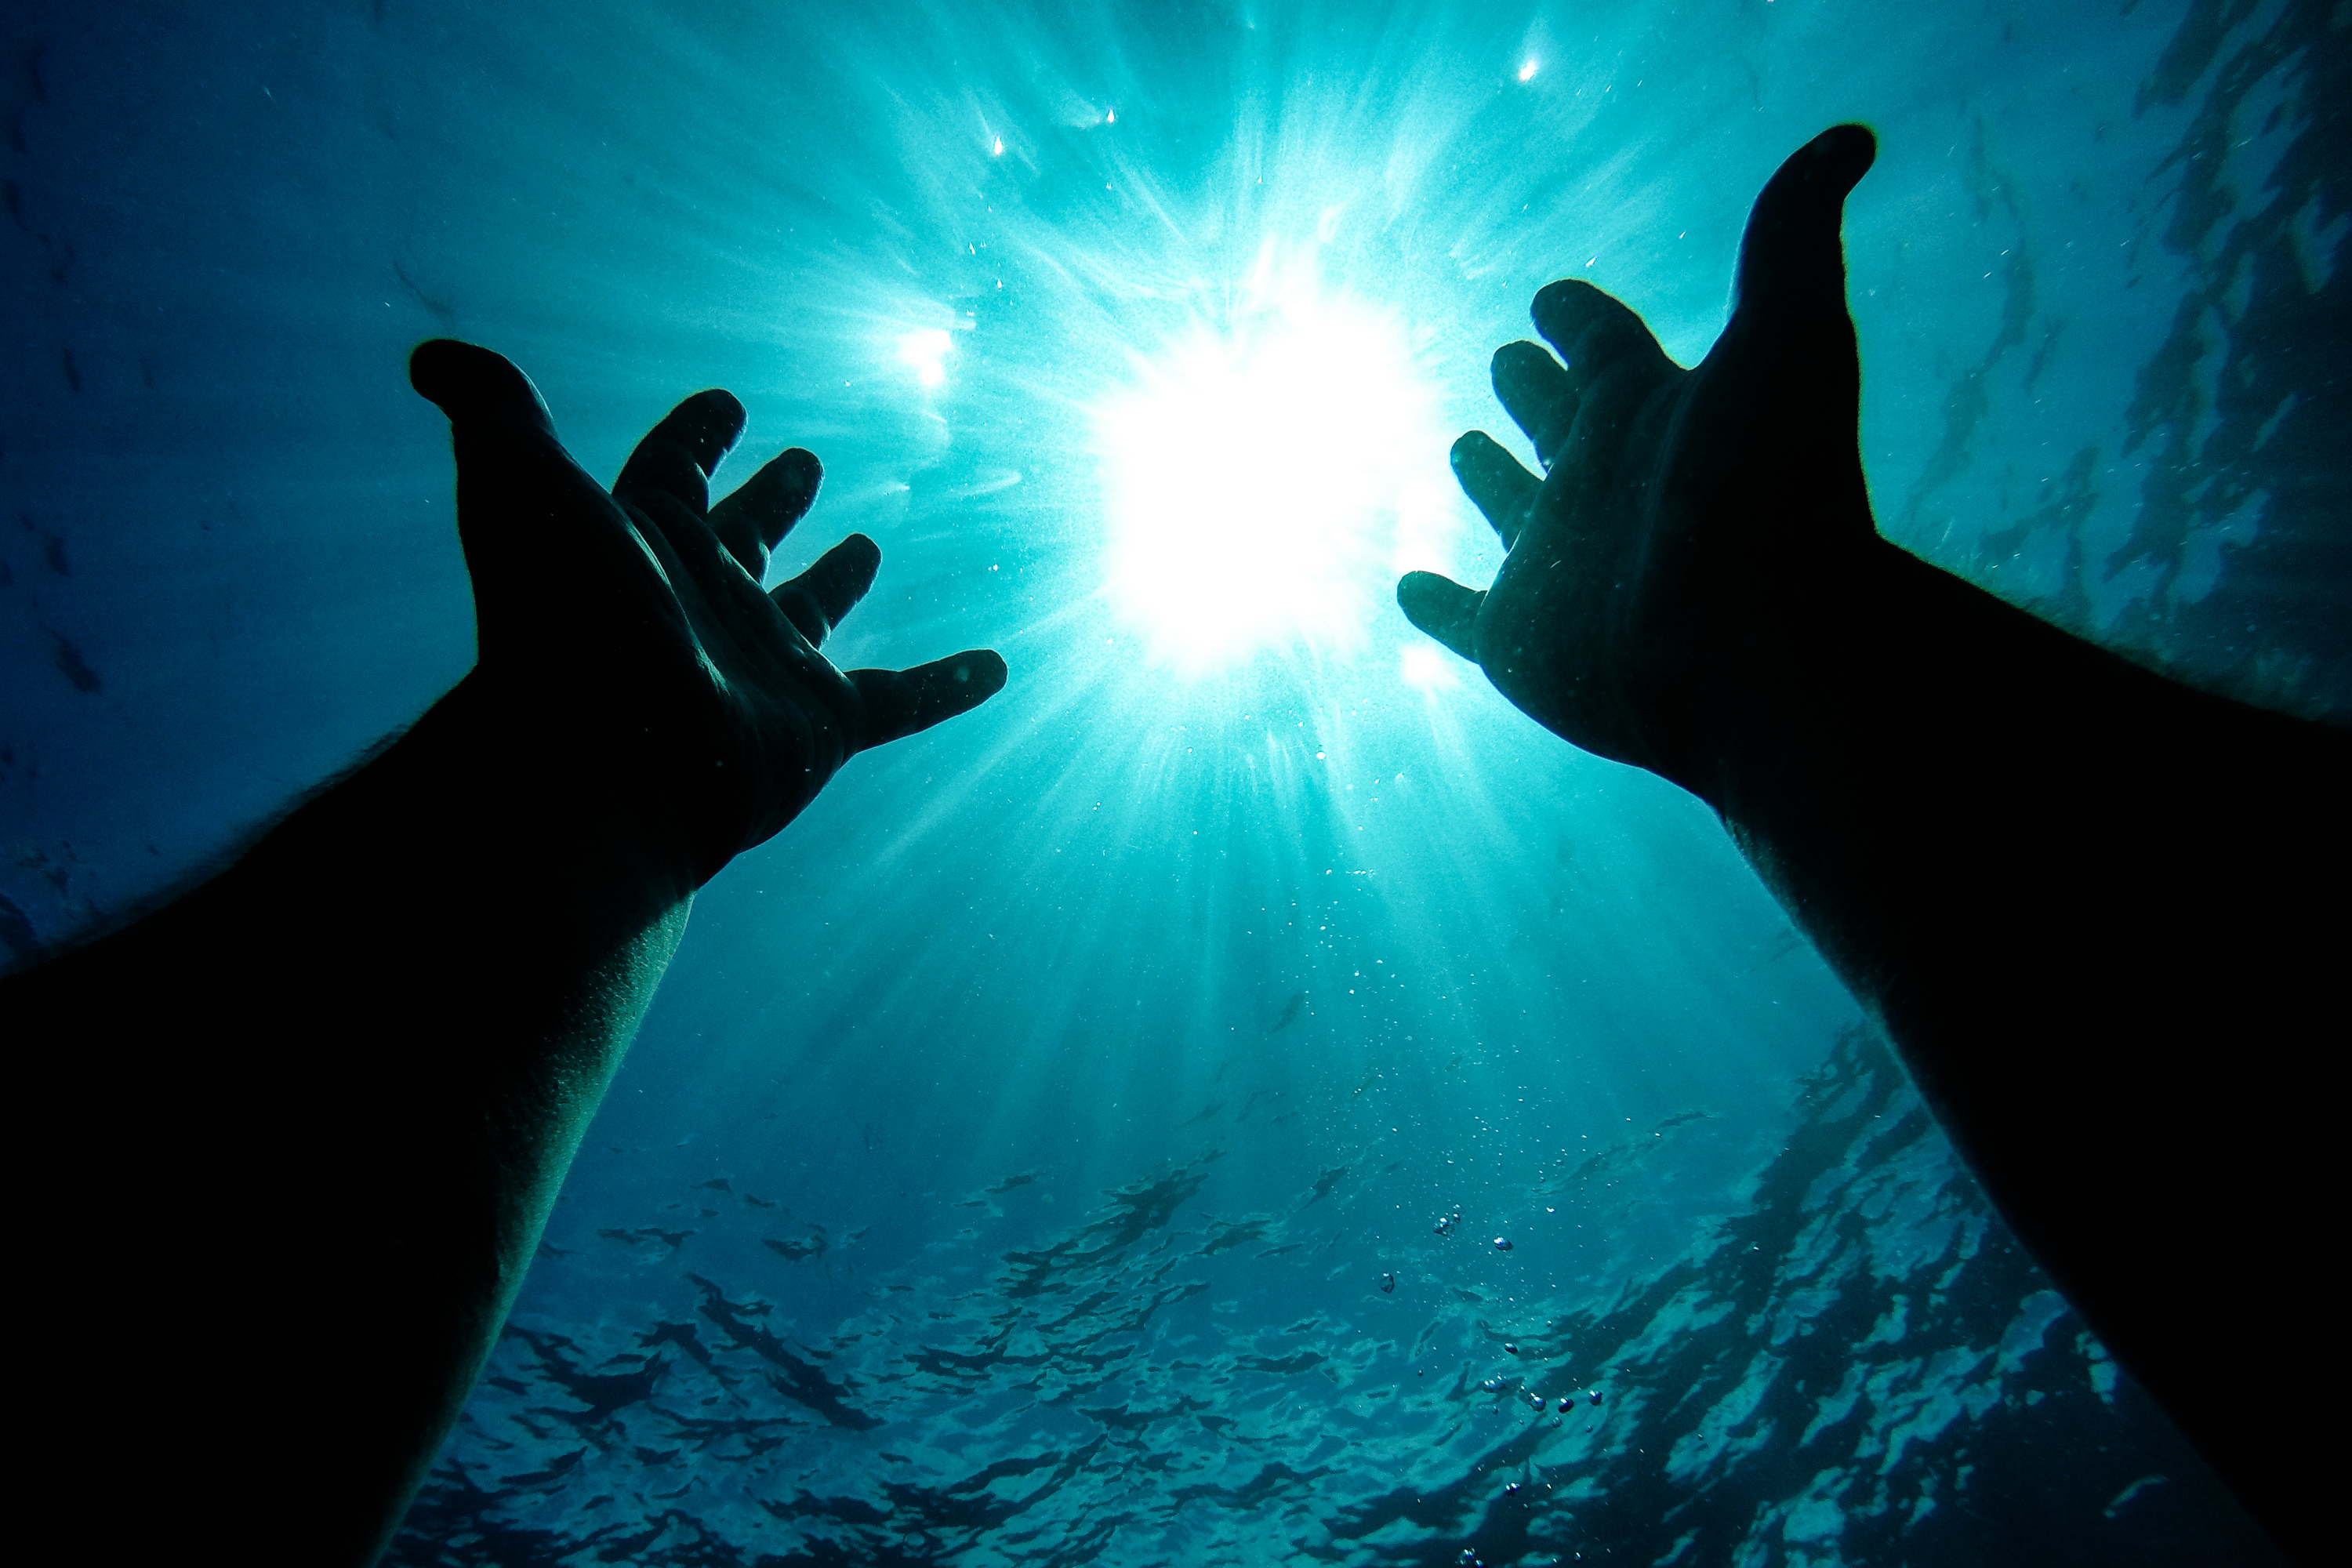 Two hands reaching for the surface under water